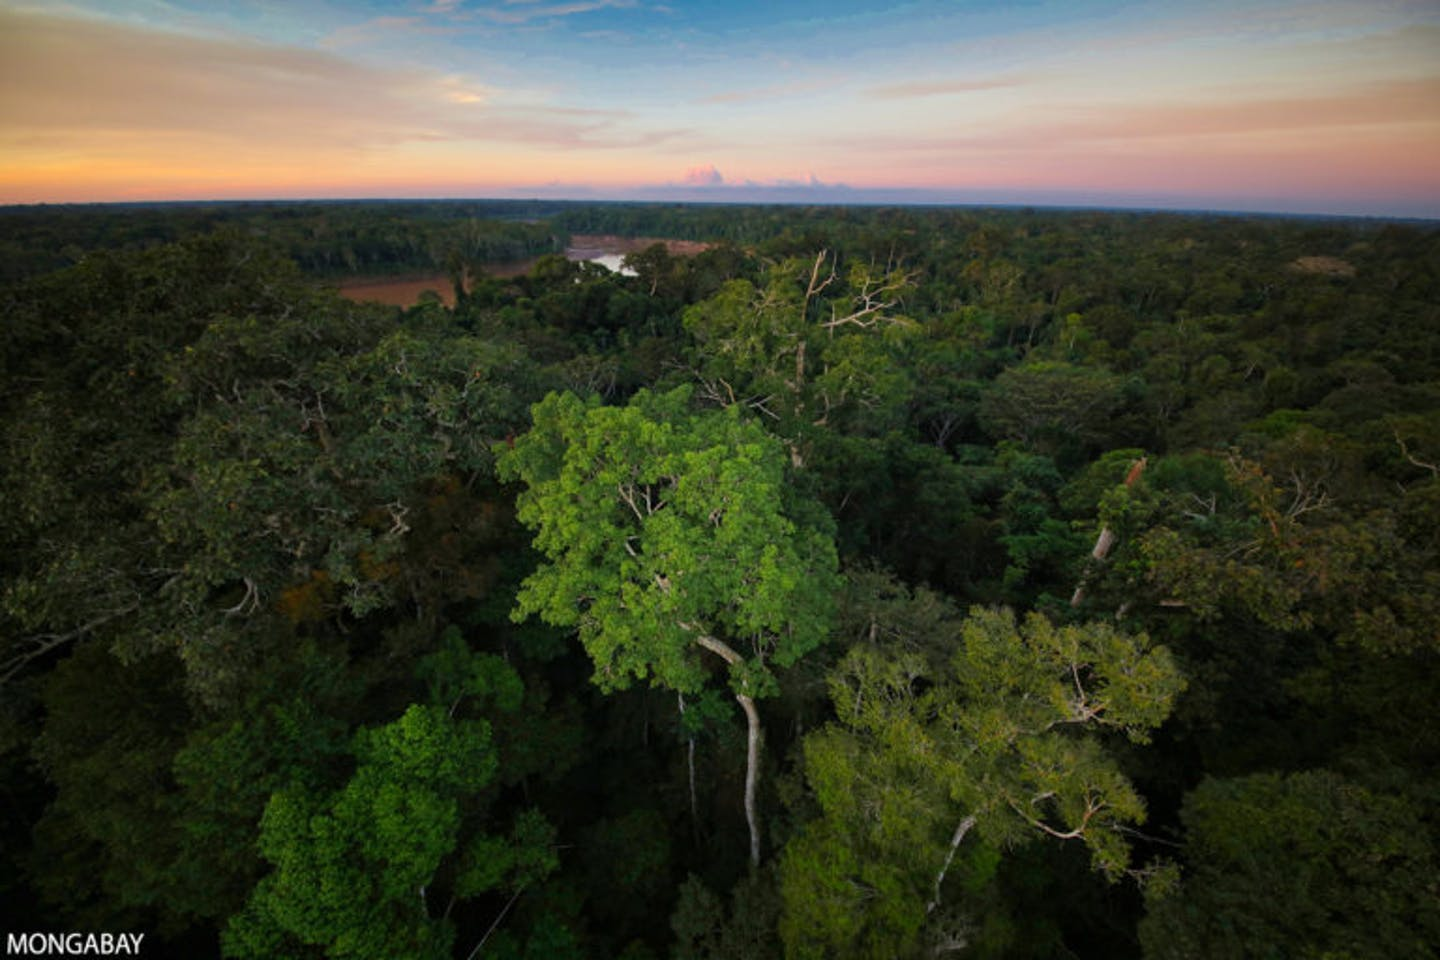 Mongabay Founder Rhett A. Butler: 11 things to watch in 2021